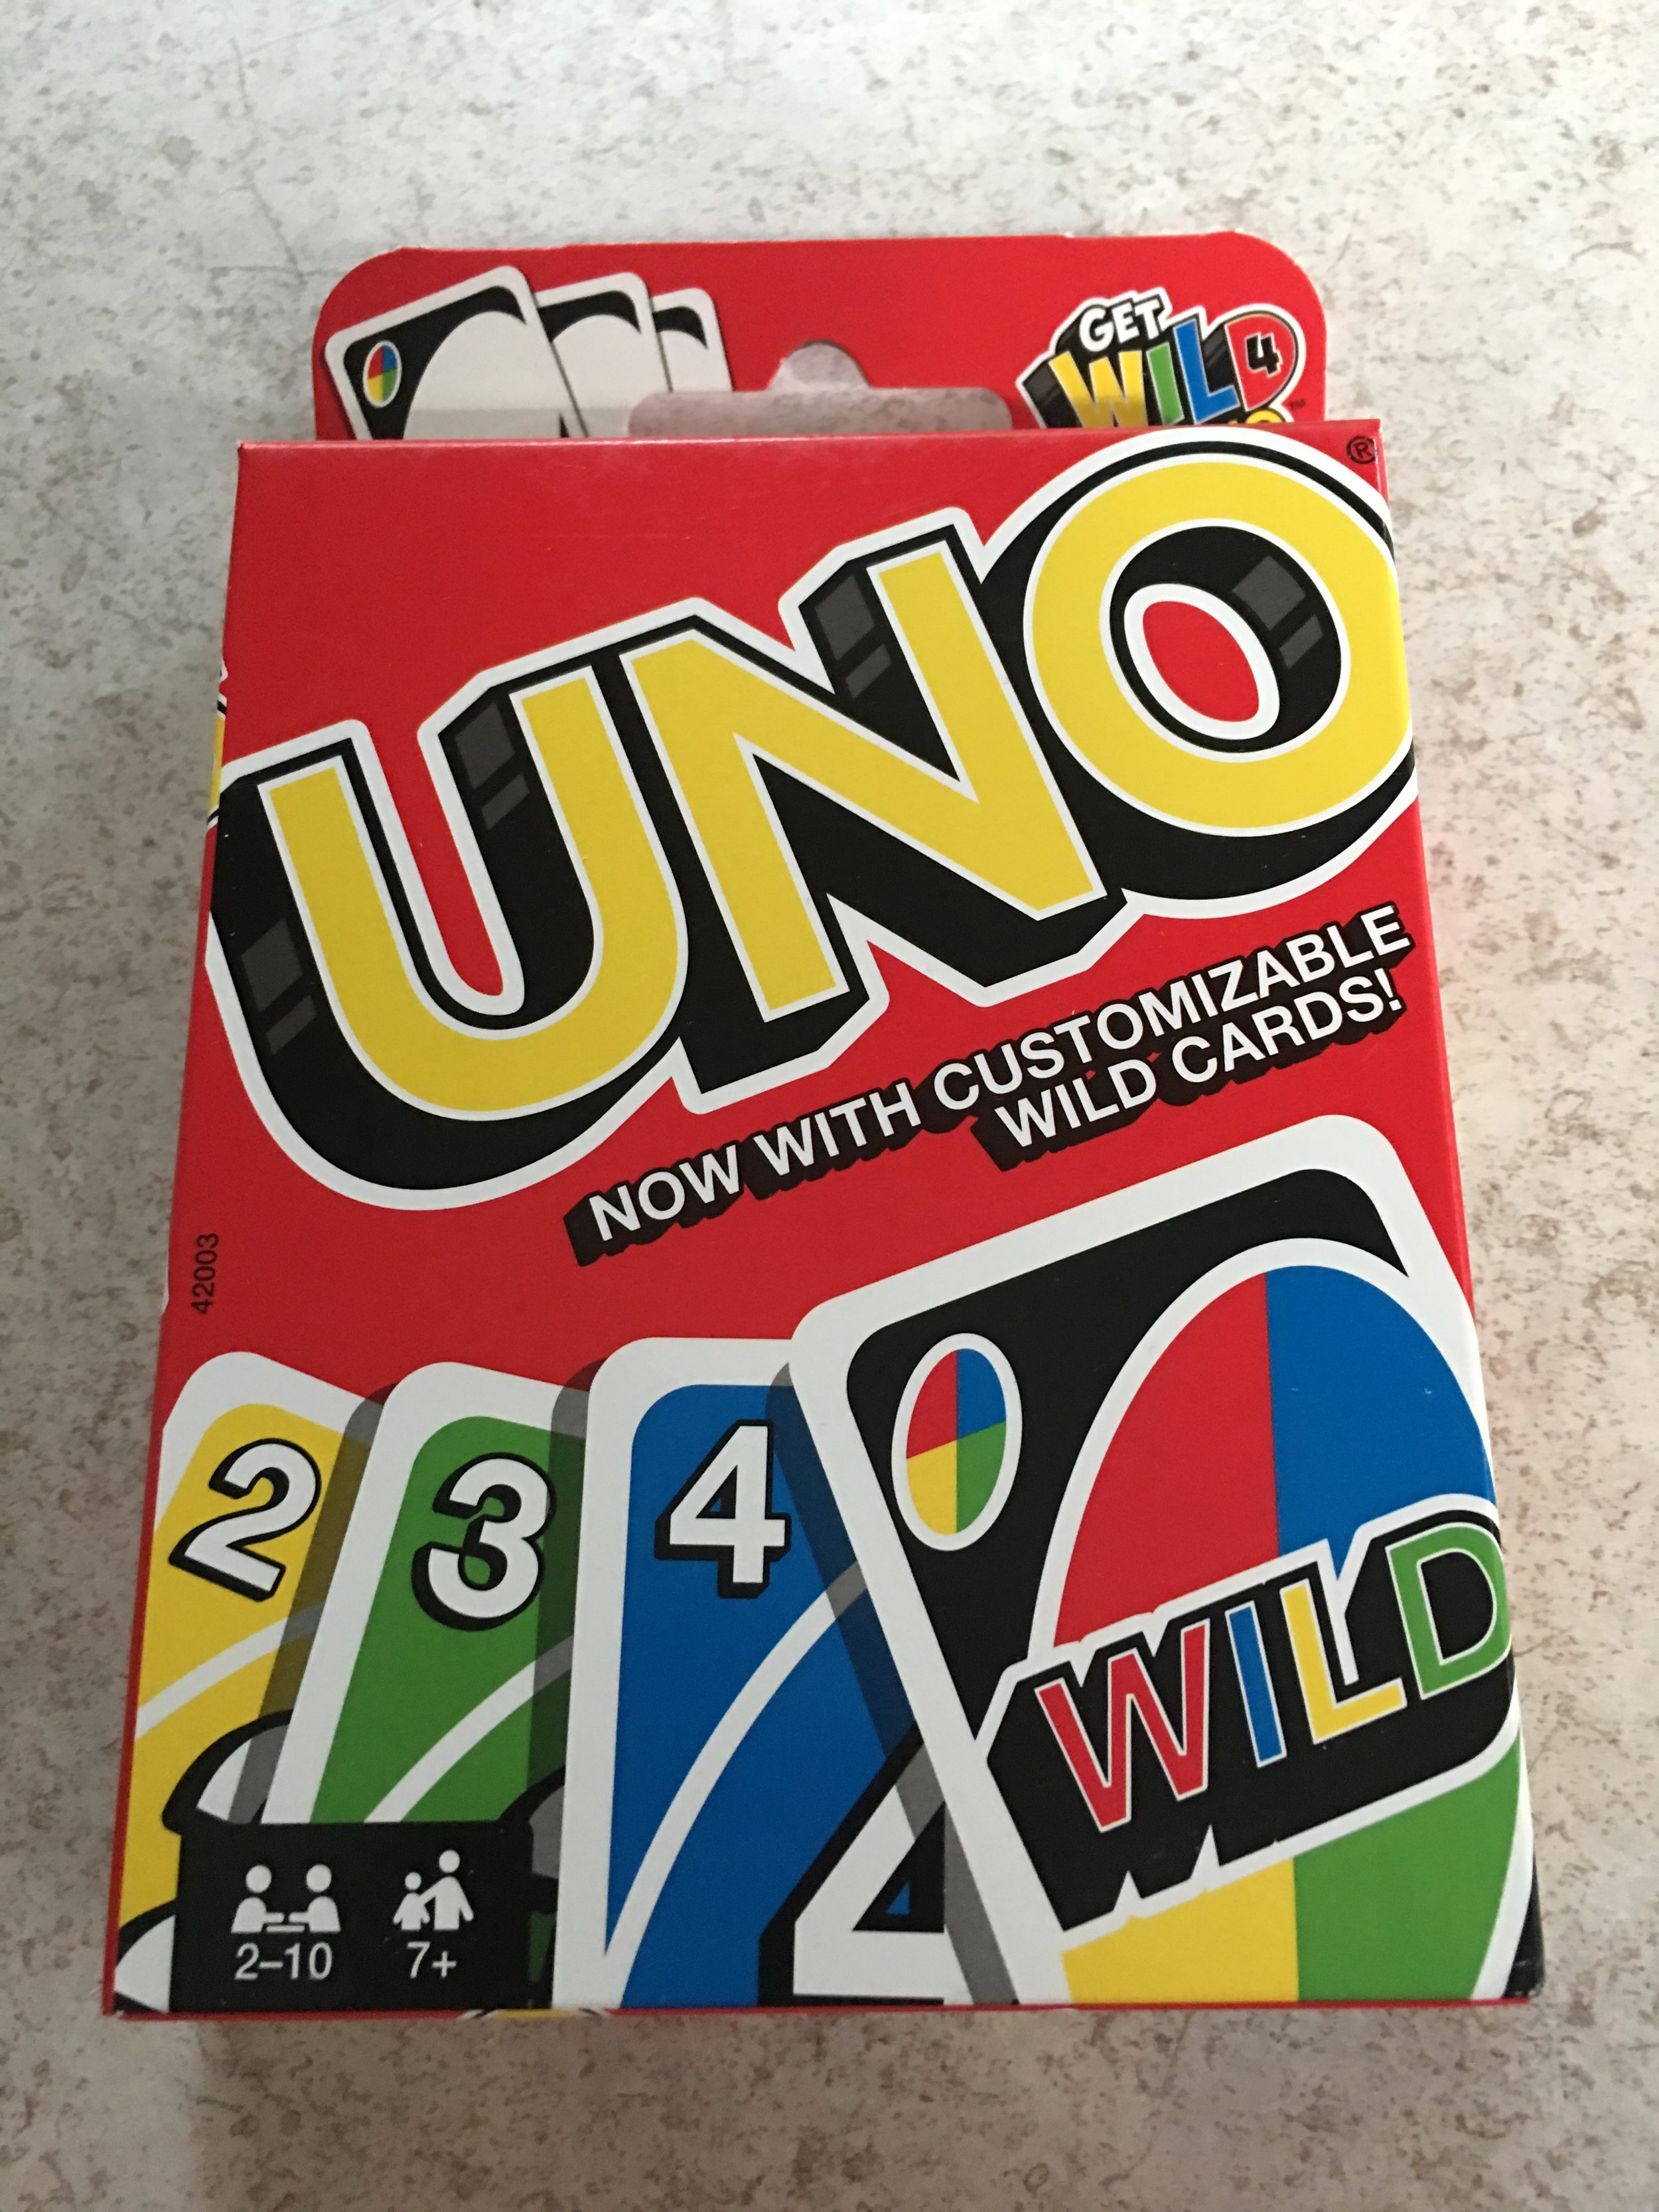 While shopping, I spotted the Uno logo that Dustin designed. He's done a lot of great designs but for some reason, him doing the Uno logo is my favorite! We played this game a lot while he was growing up!